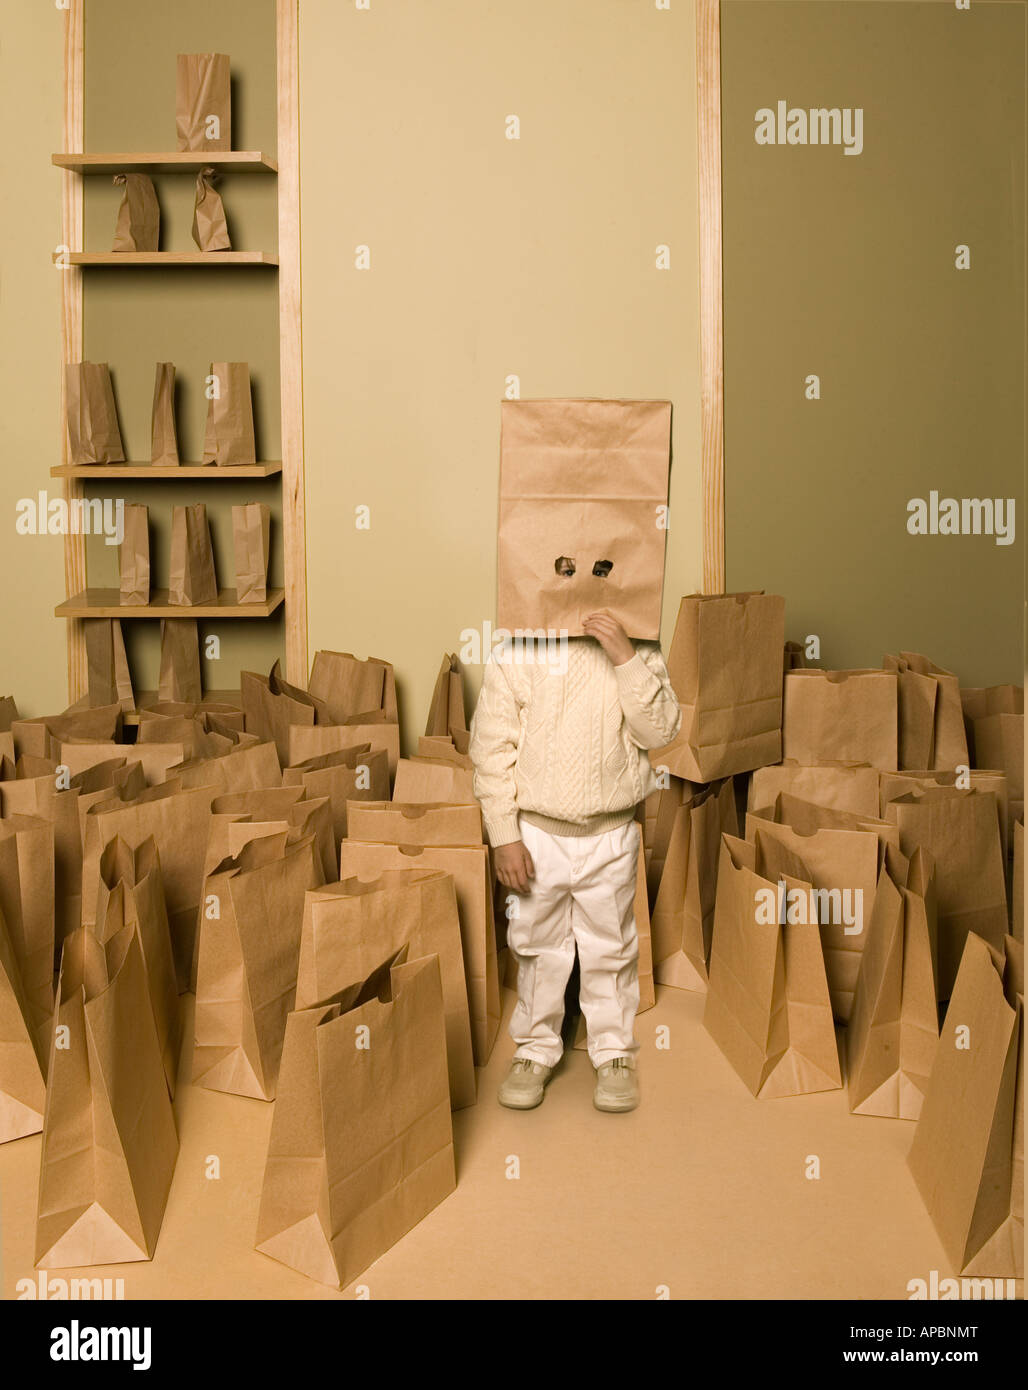 young child stands amongst several paper bags with paper bag on his head with cut out eyes as mask conceal hide - Stock Image